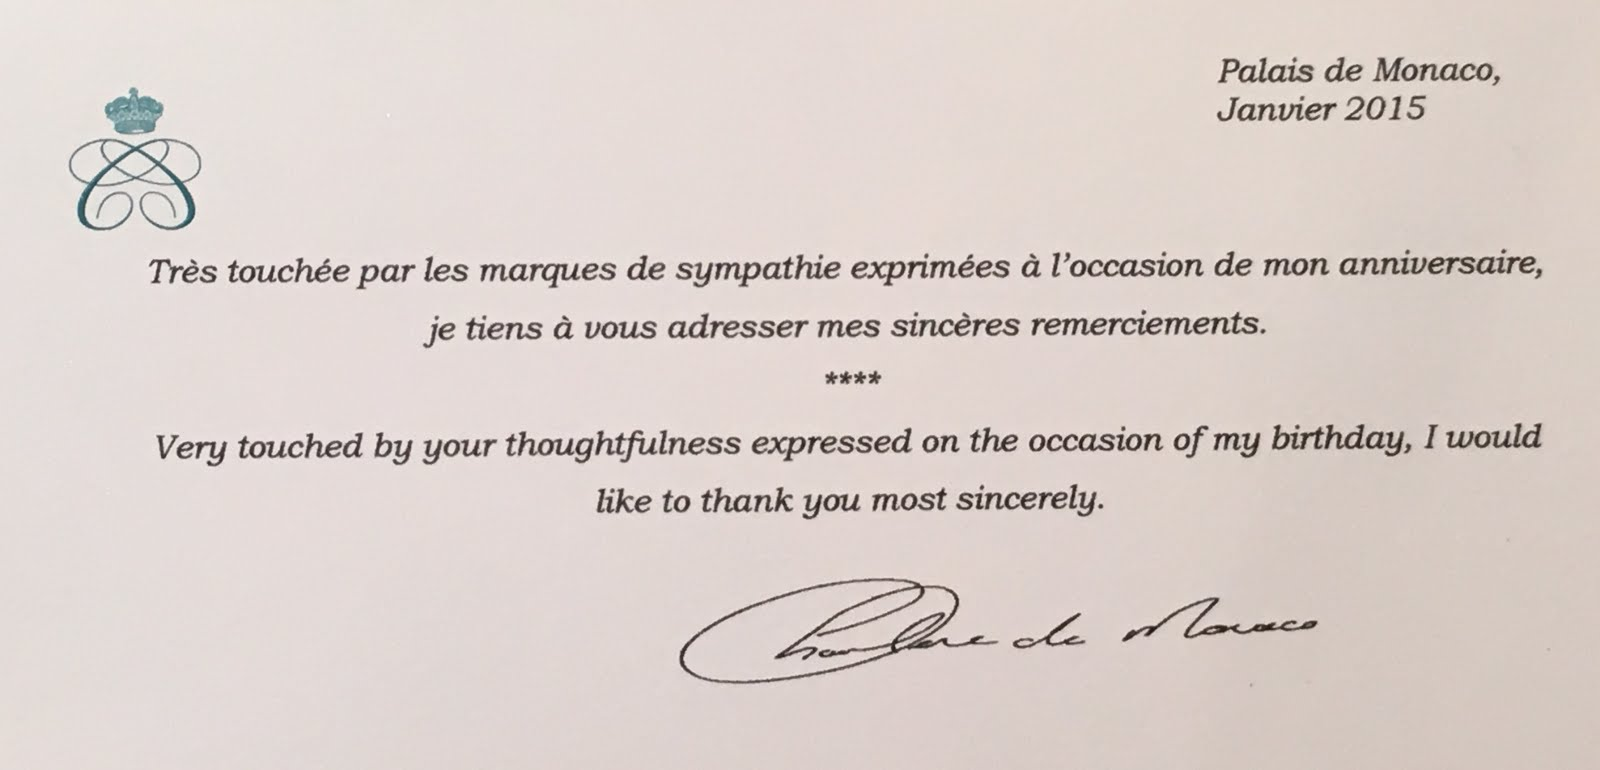 gert s royals princess charlene thank you birthday note the note is bi lingual written in both french and english the two commonly spoken languages in